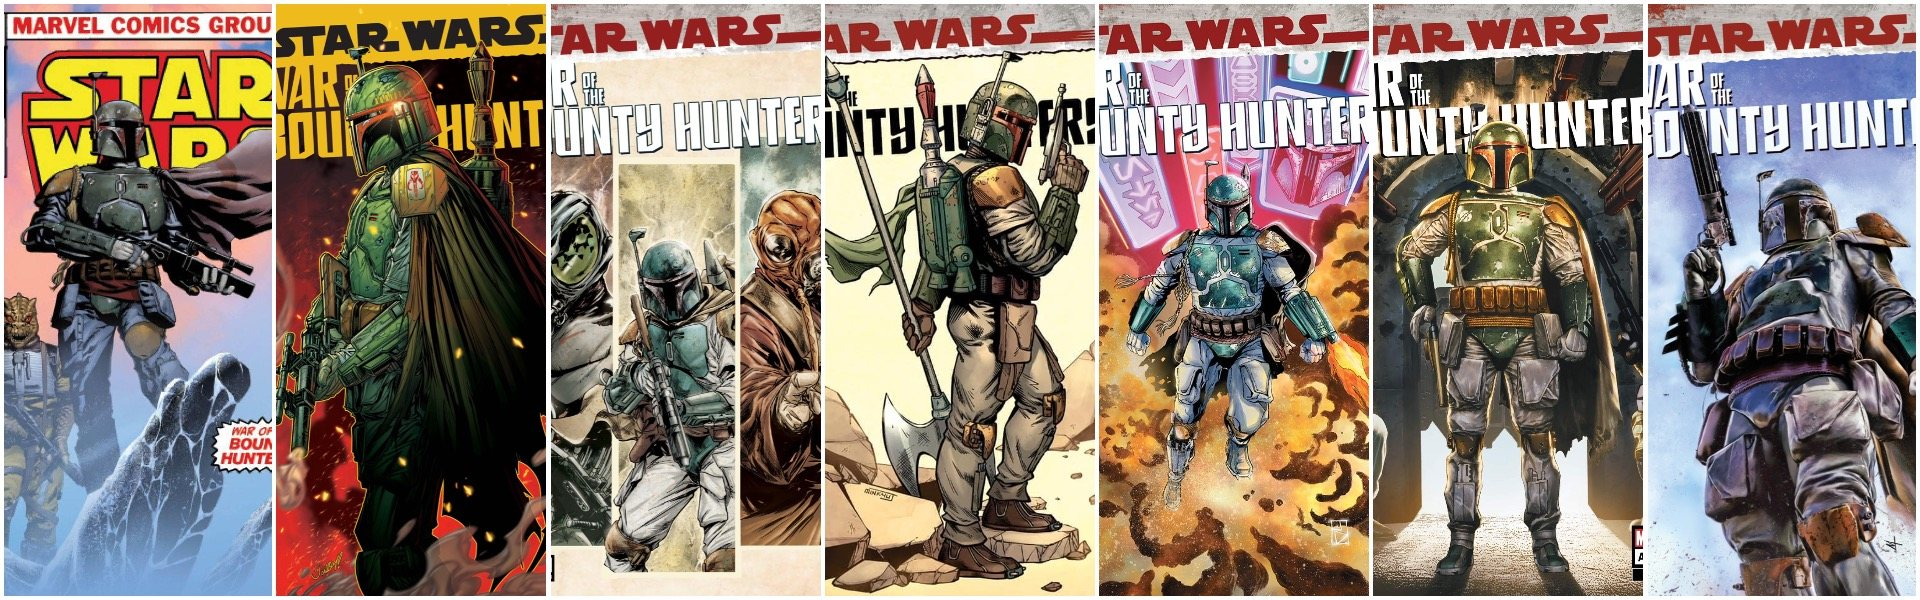 Star Wars War of the Bounty Hunters Exclusives